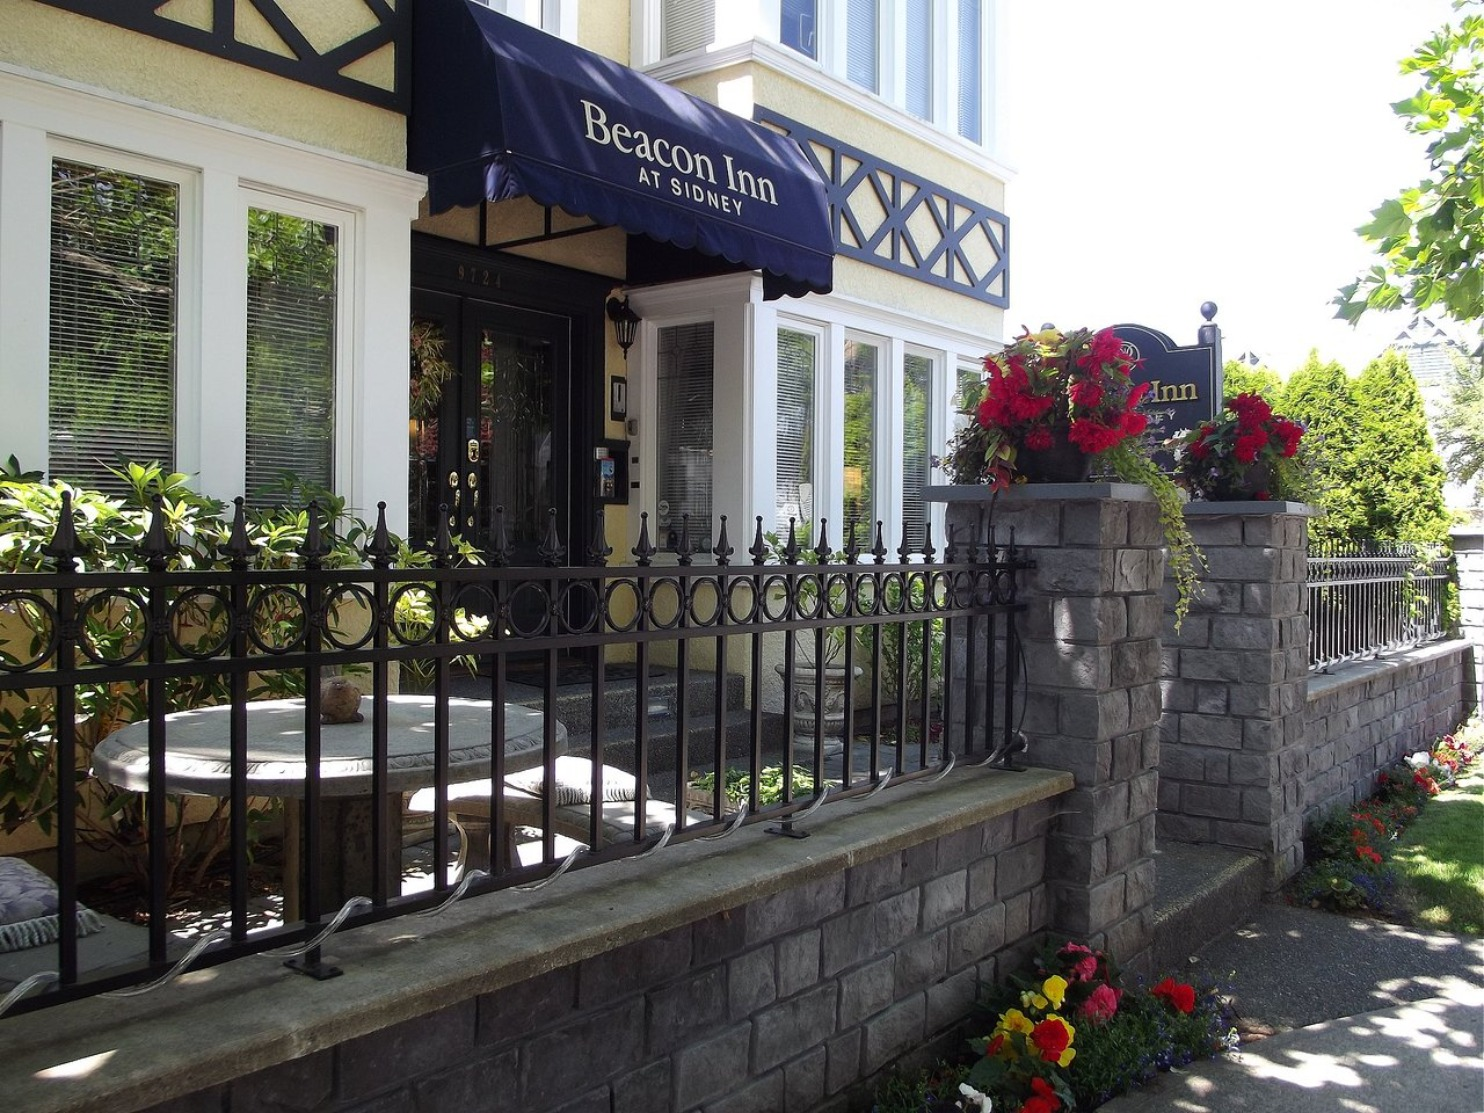 A vase of flowers sits in front of a building at  Beacon Inn at Sidney.